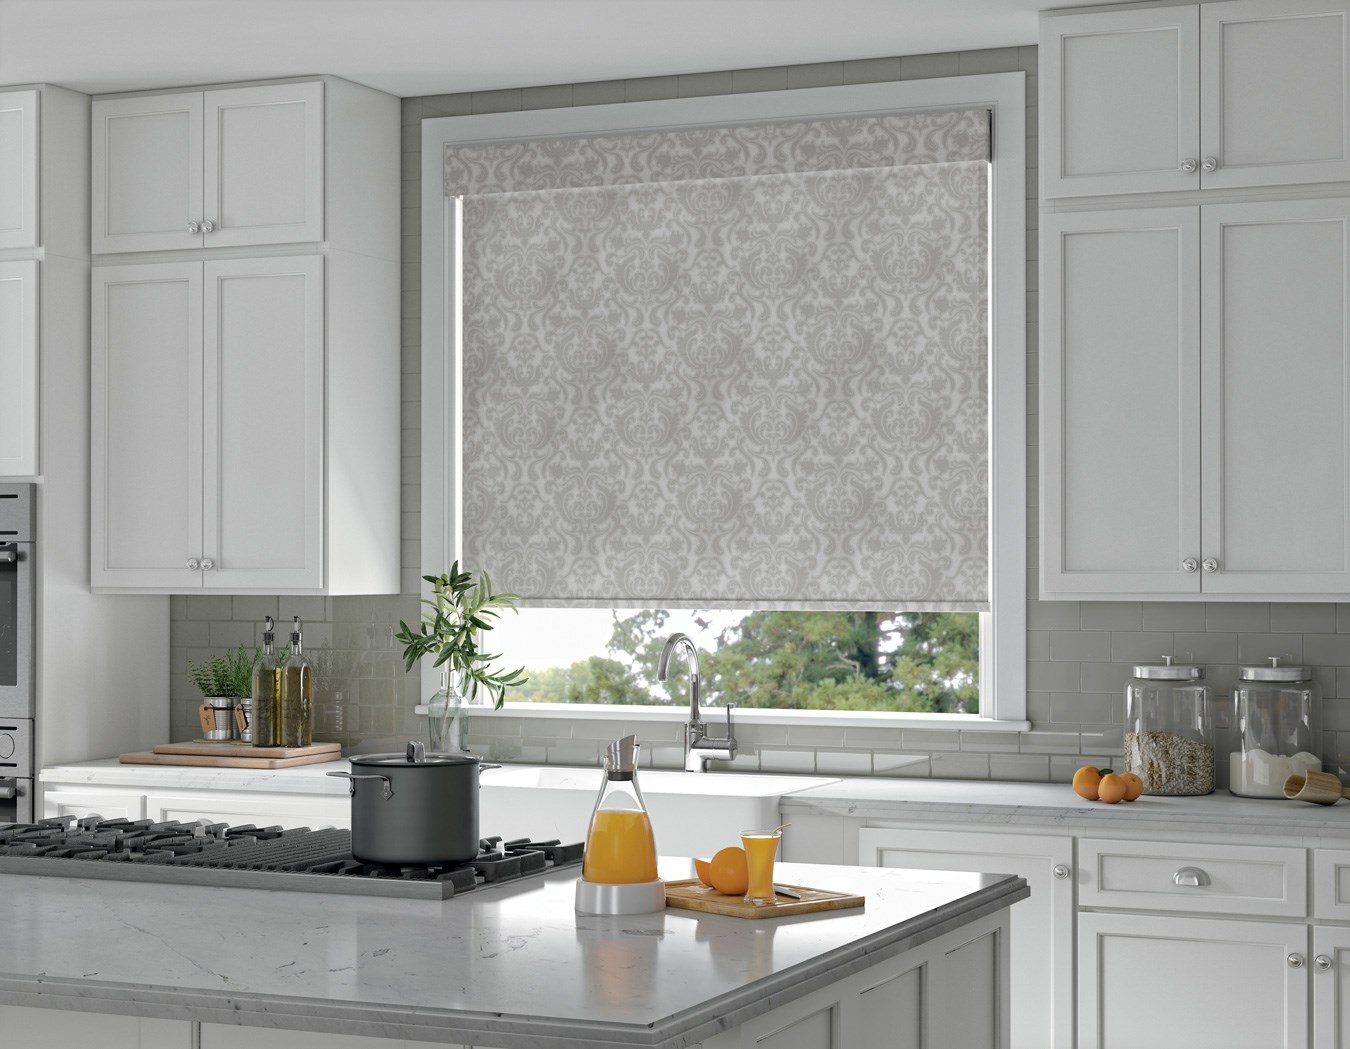 Blinds — Blinds & More on wood kitchen ideas, skylight kitchen ideas, window kitchen ideas, roman shades kitchen ideas,